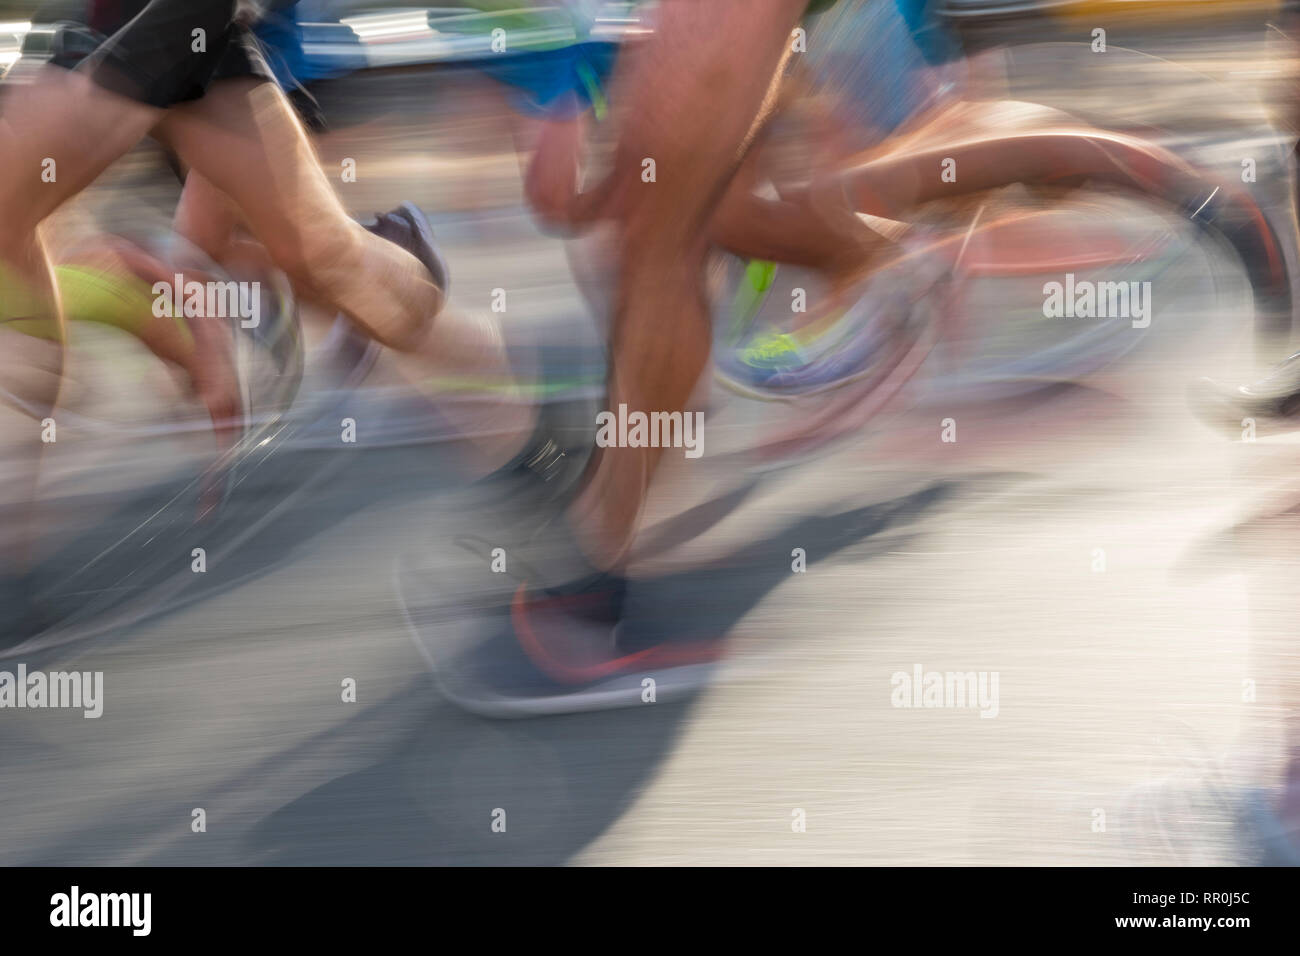 Detail of runners legs in motion - Stock Image